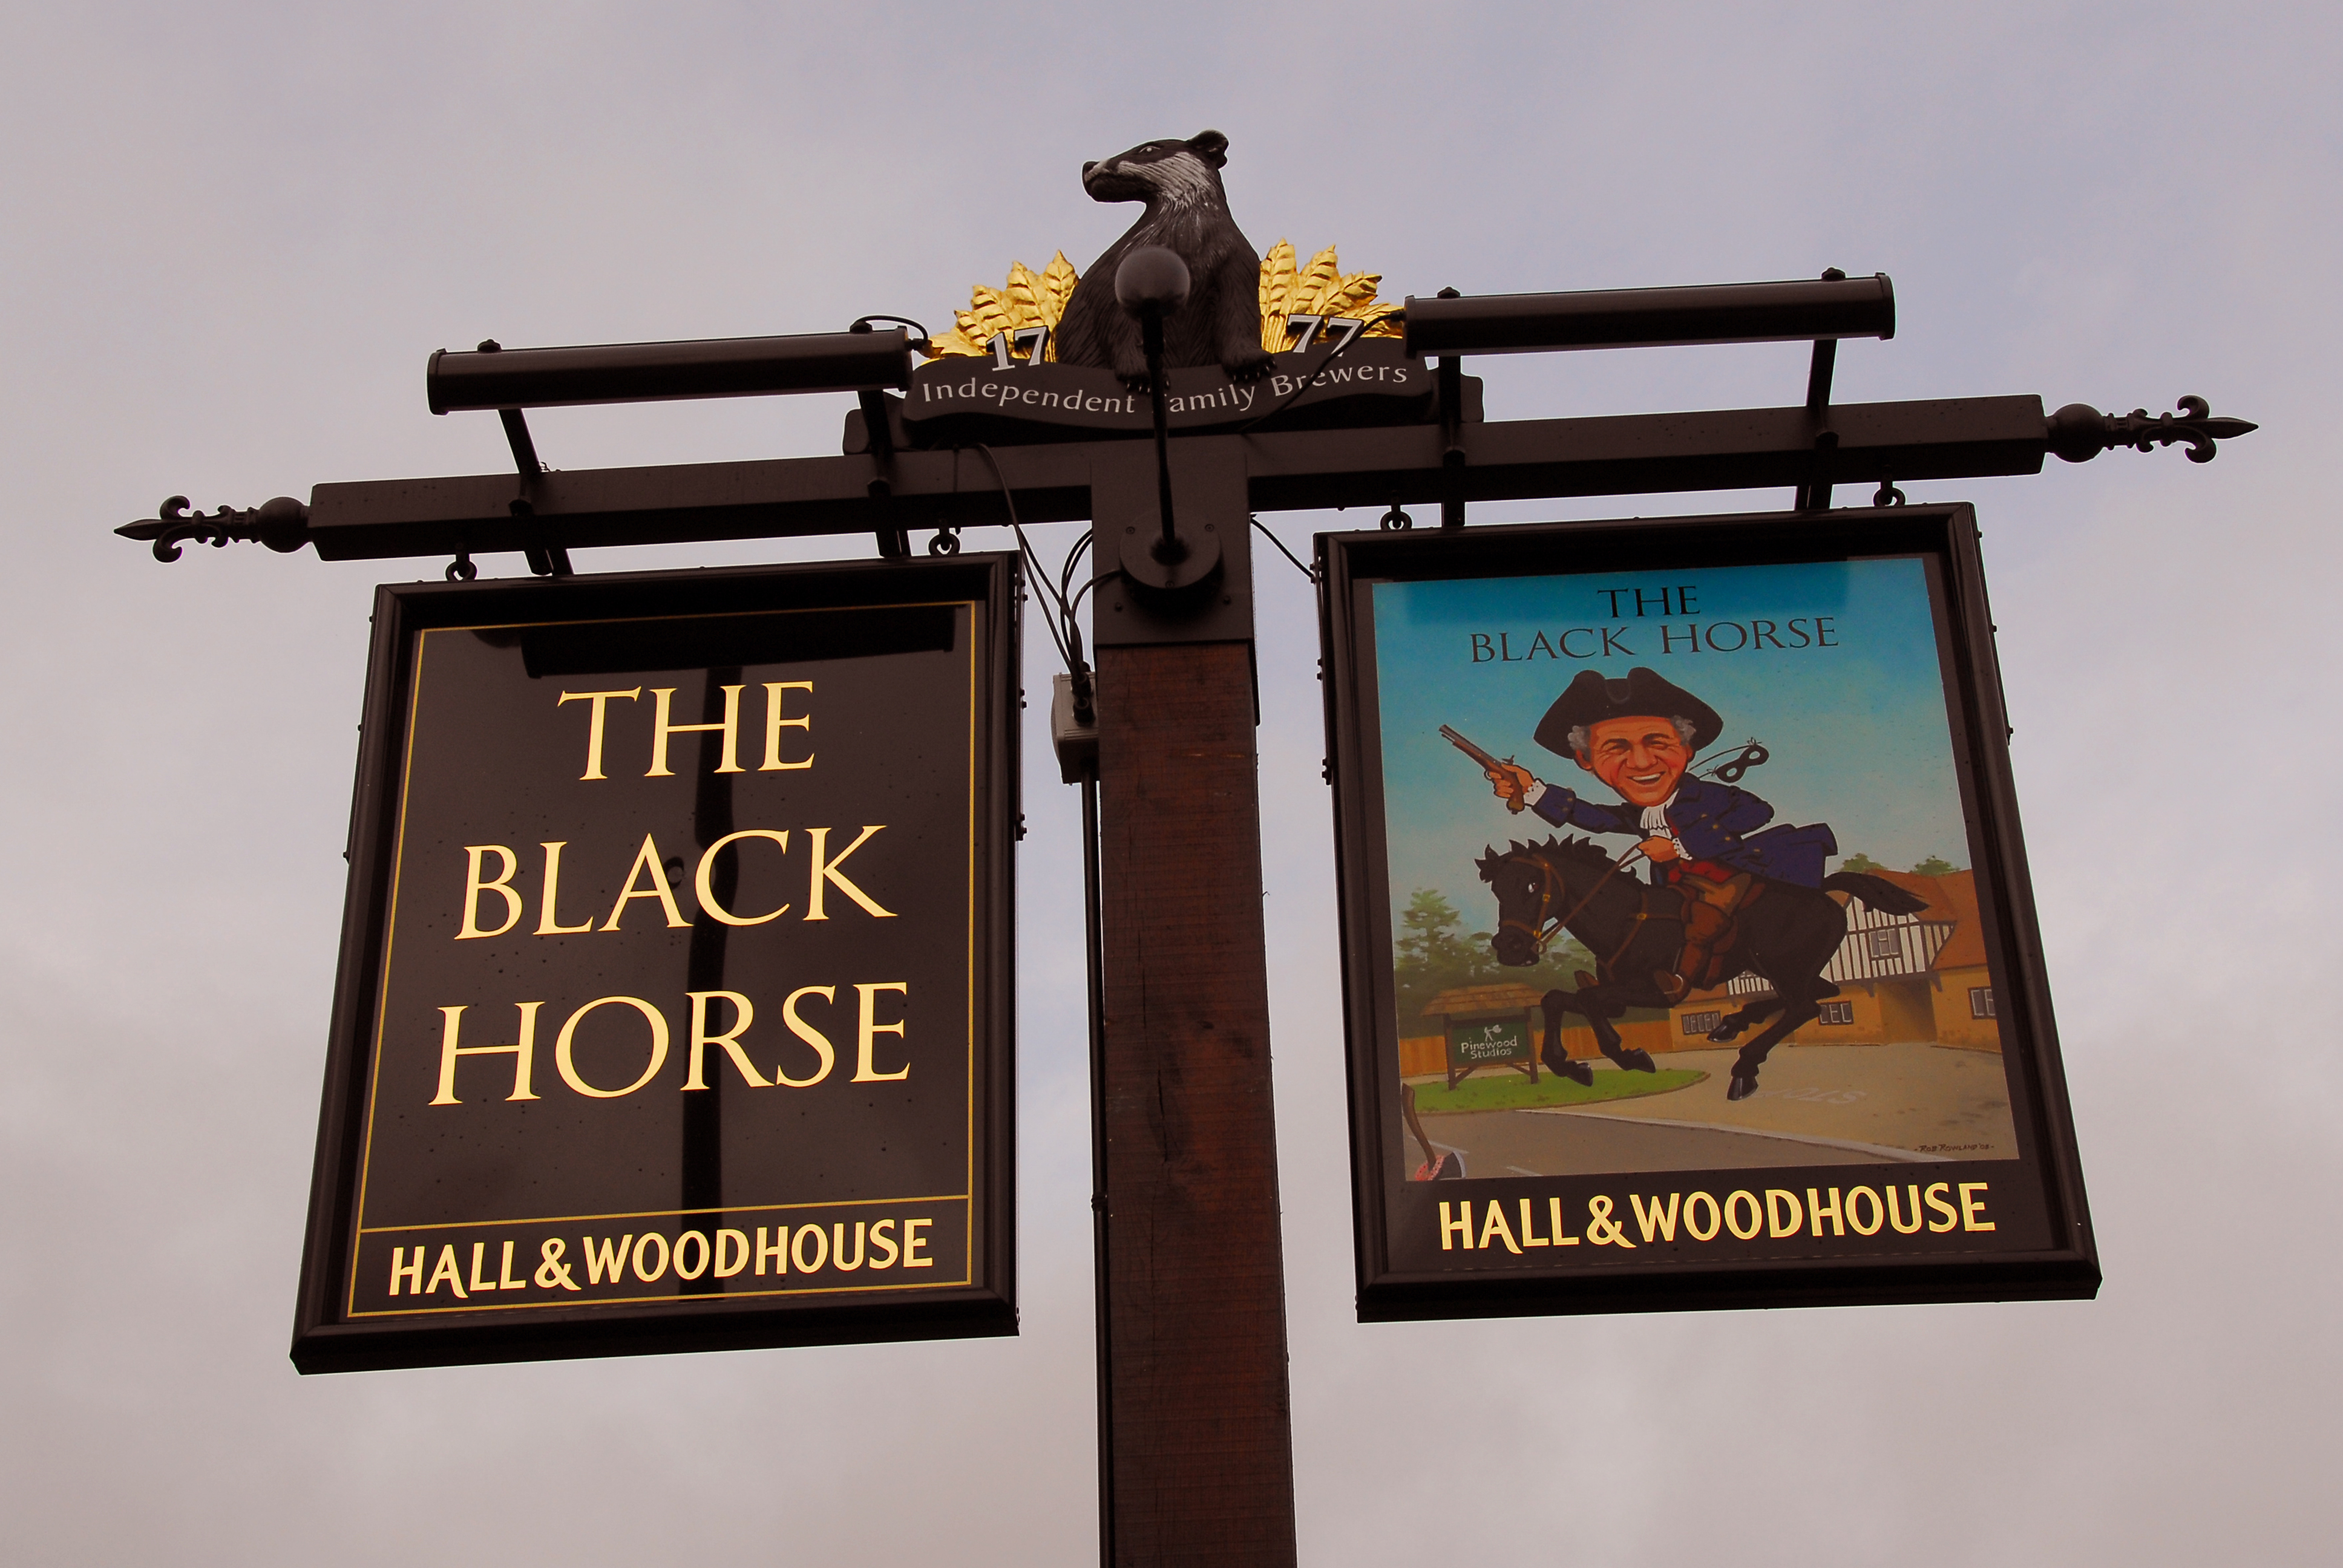 The Black Horse Iver Heath